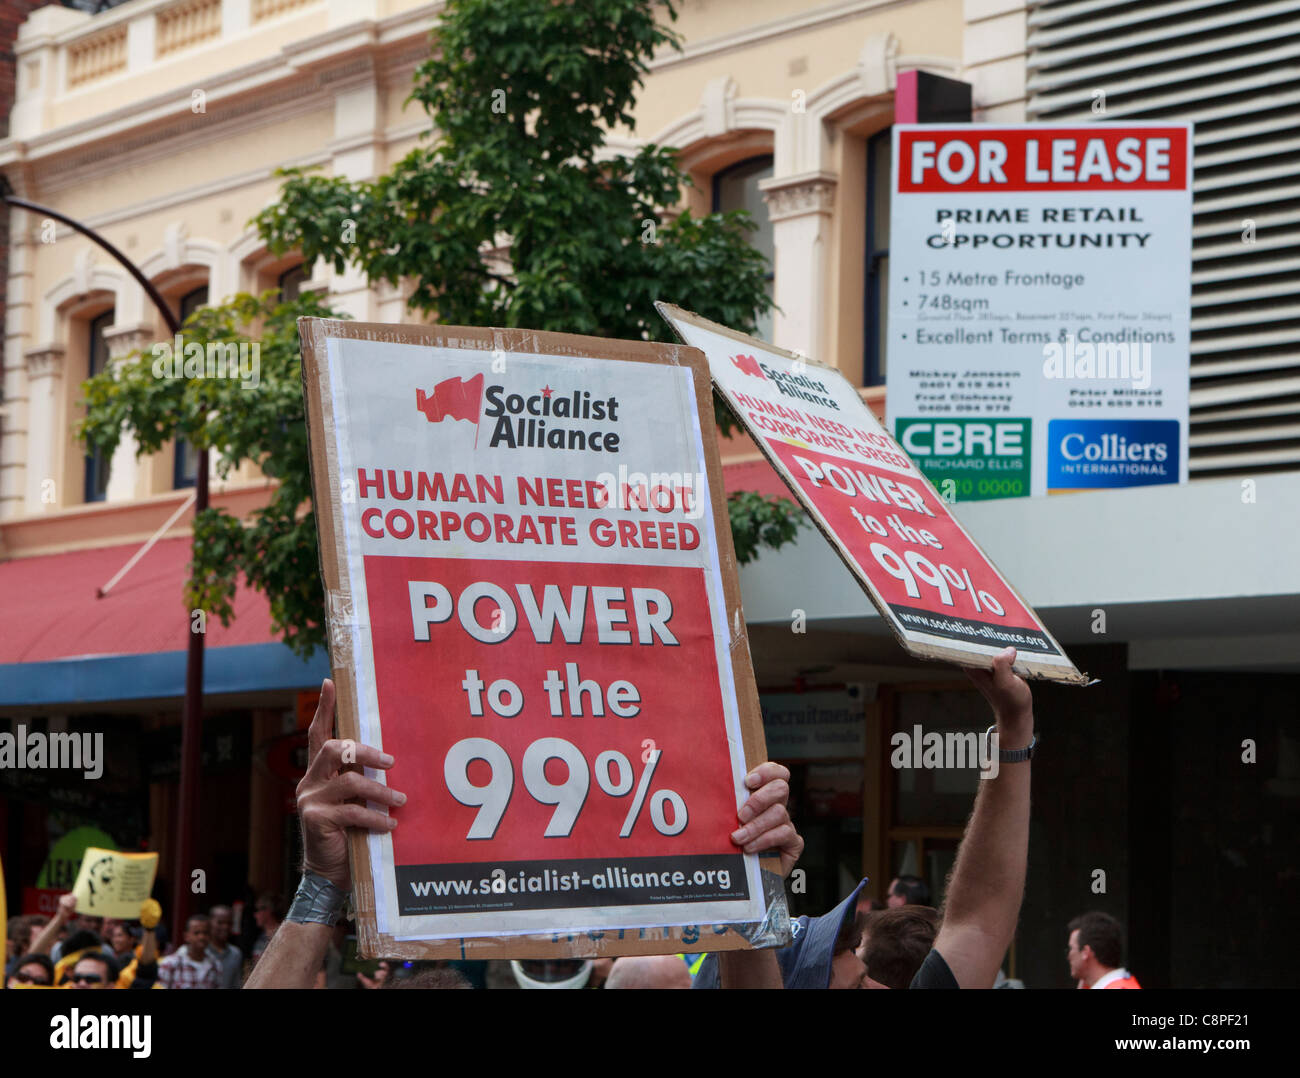 Socialist Alliance protesters hold  'Human Need Not Corporate Greed' & 'Power to the 99%' placards - Stock Image